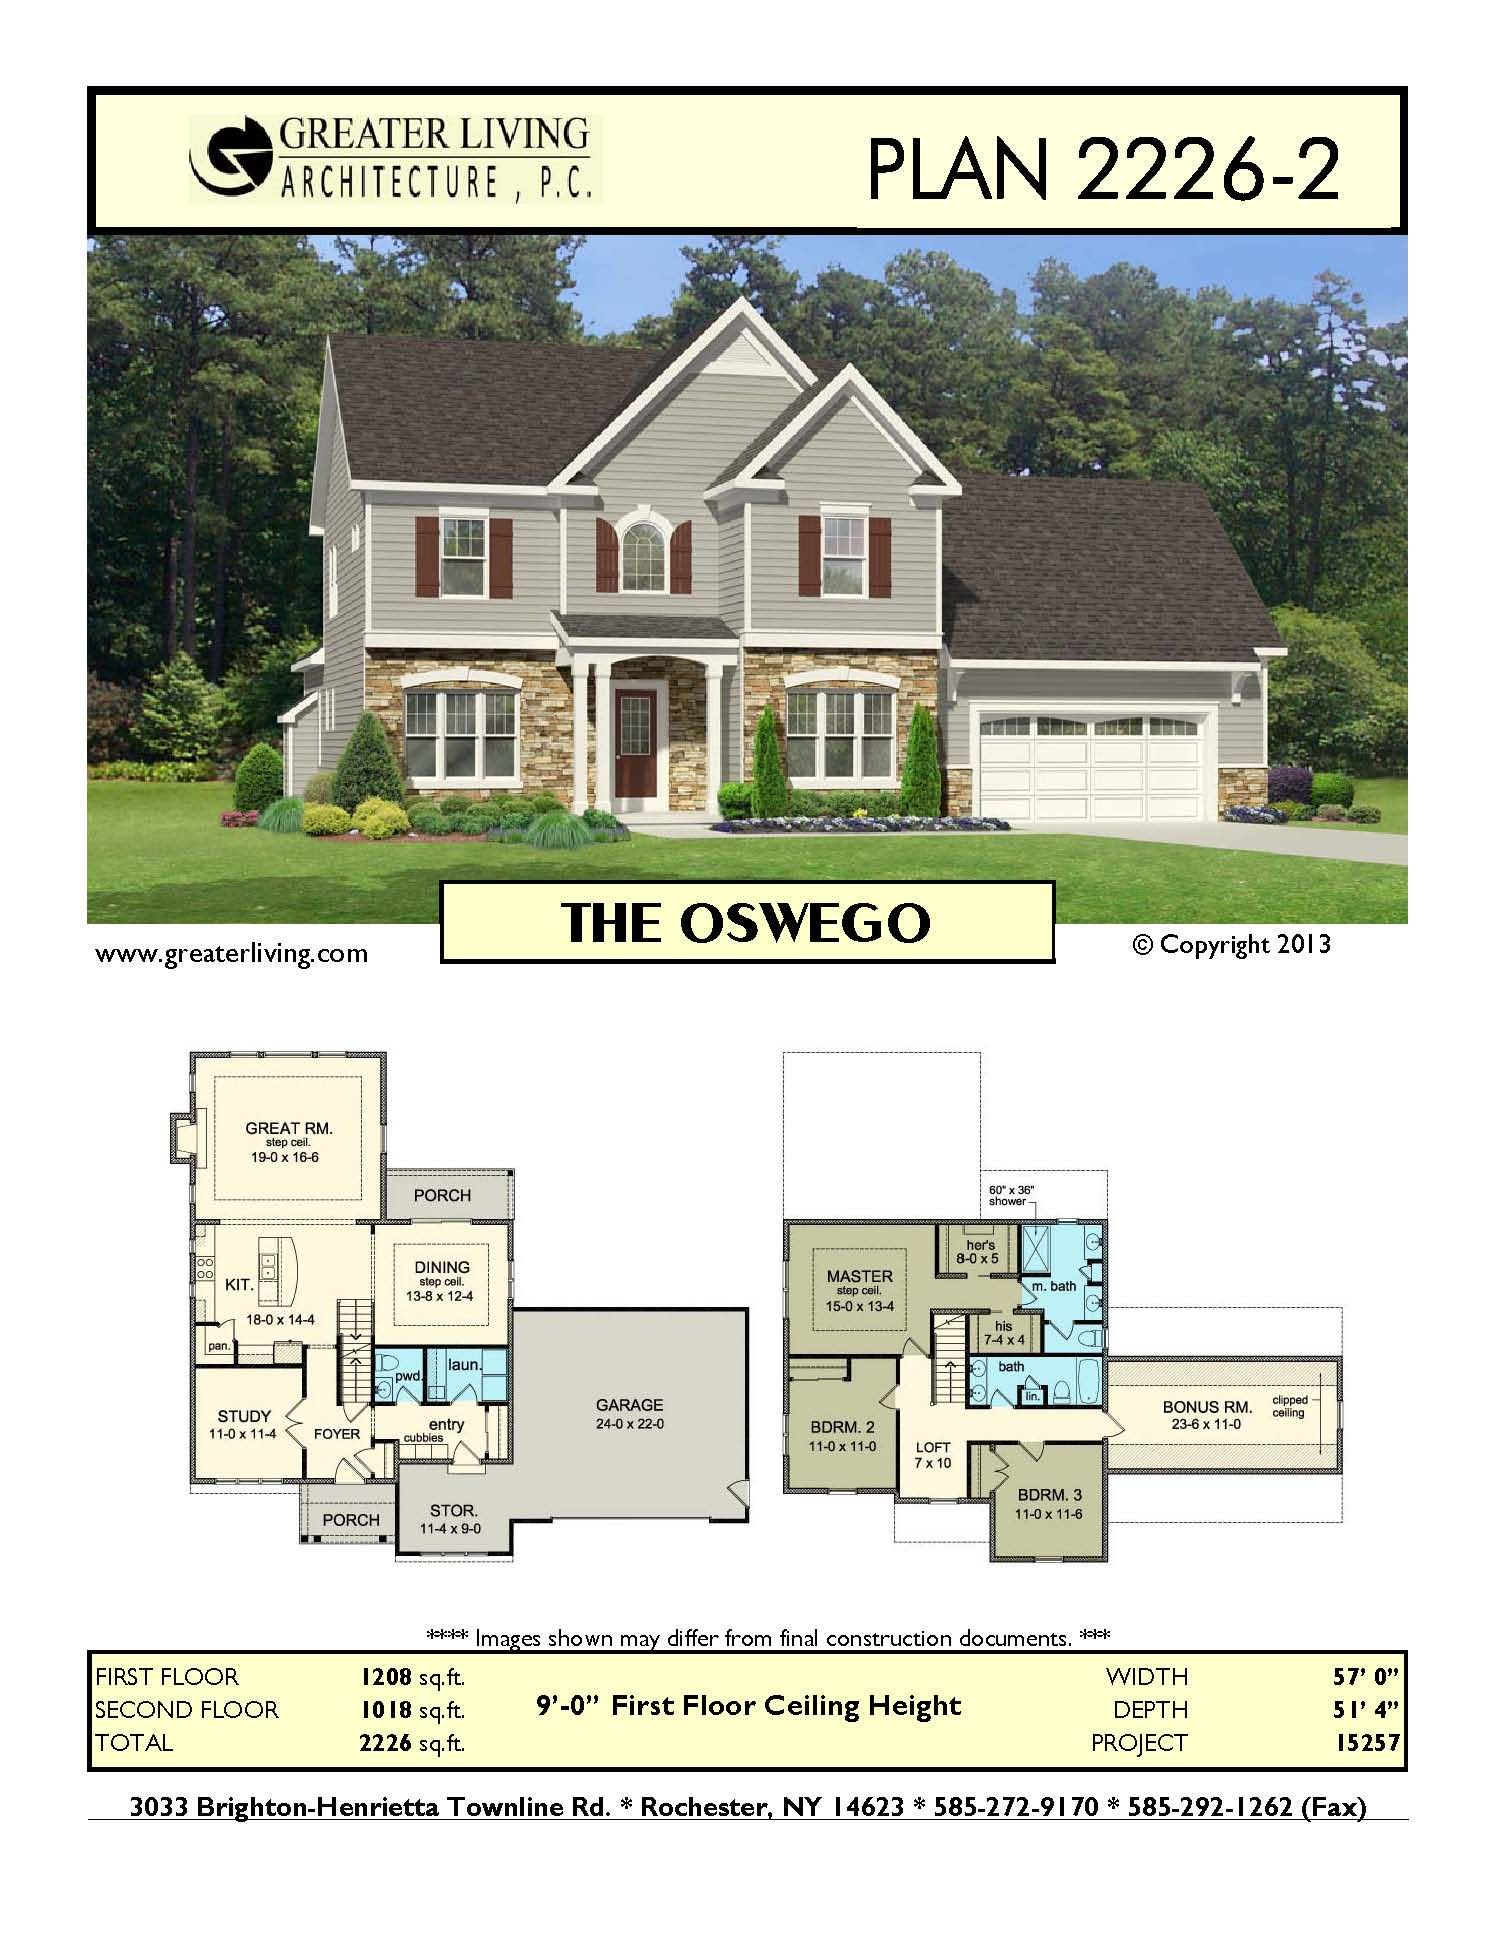 Greater Living Architecture In Henrietta, Ny Provides Premier Home Plans